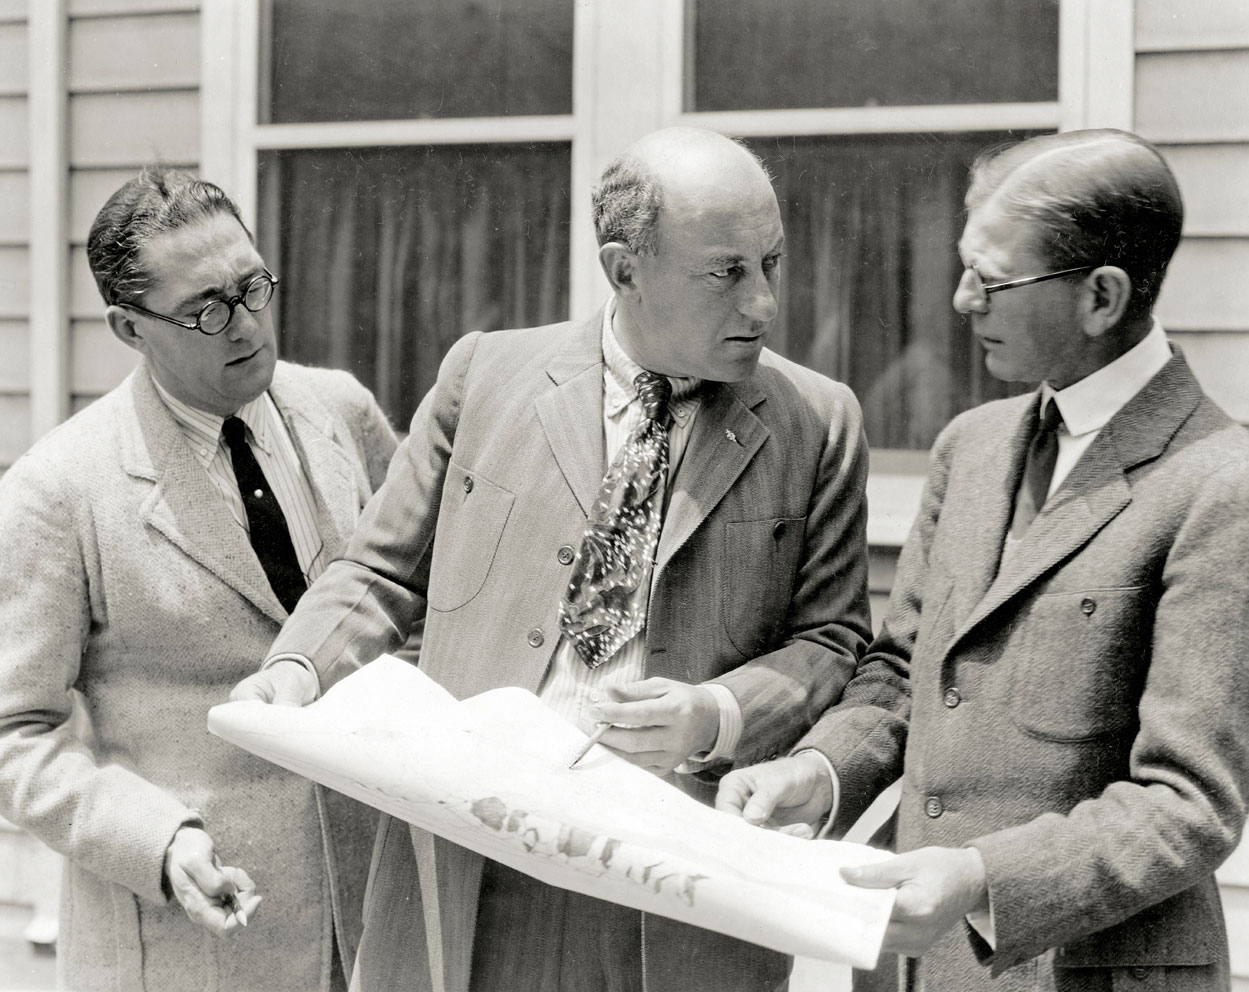 DeMille with art directors Paul Iribe and Francis McComas, 1923